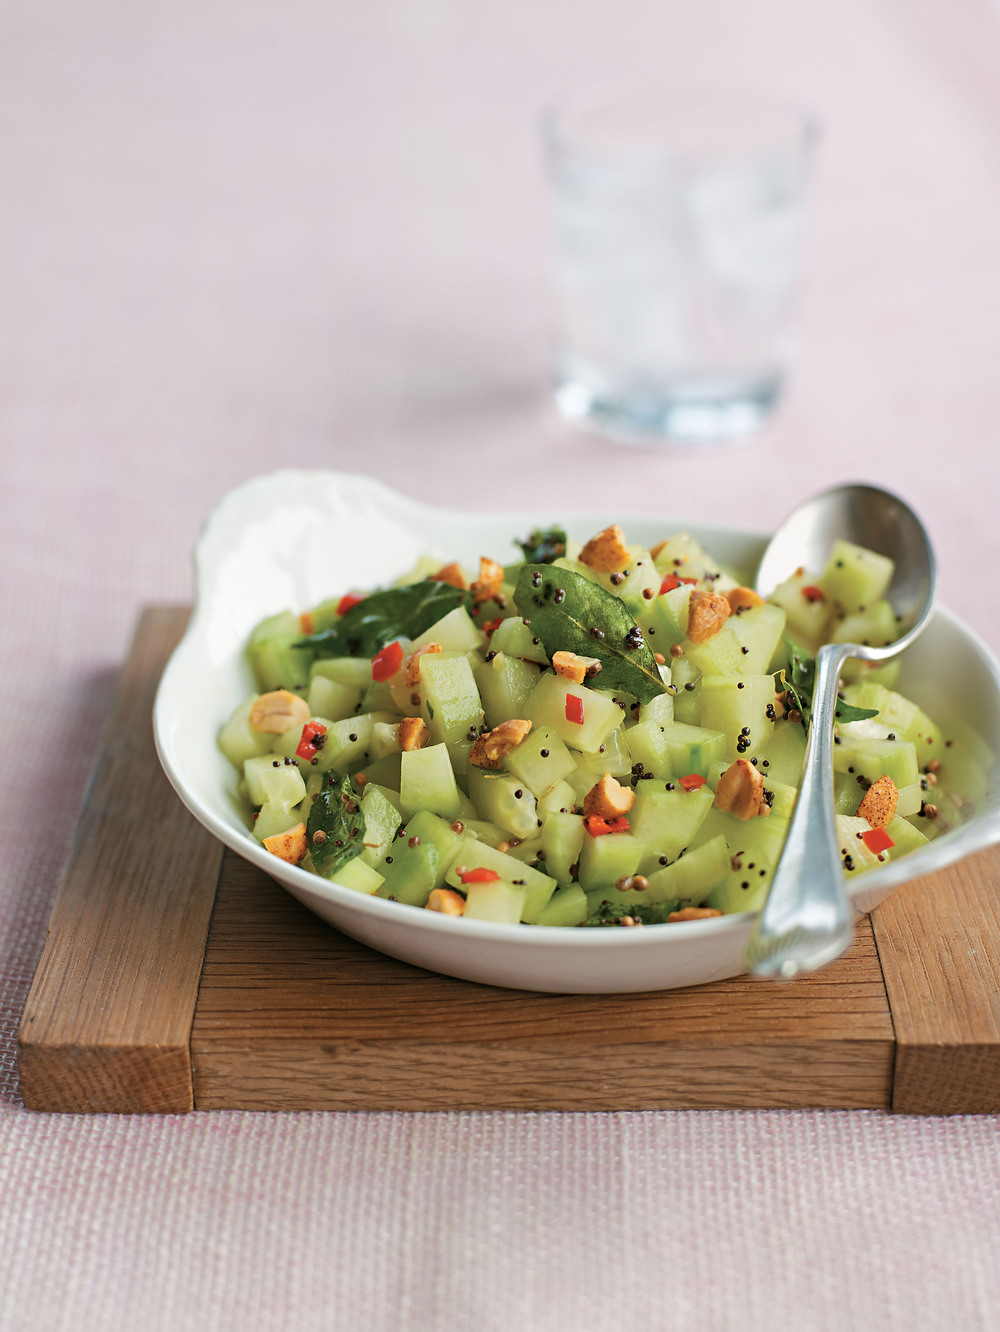 Peanut & Cucumber Salad - Aol UK | Food